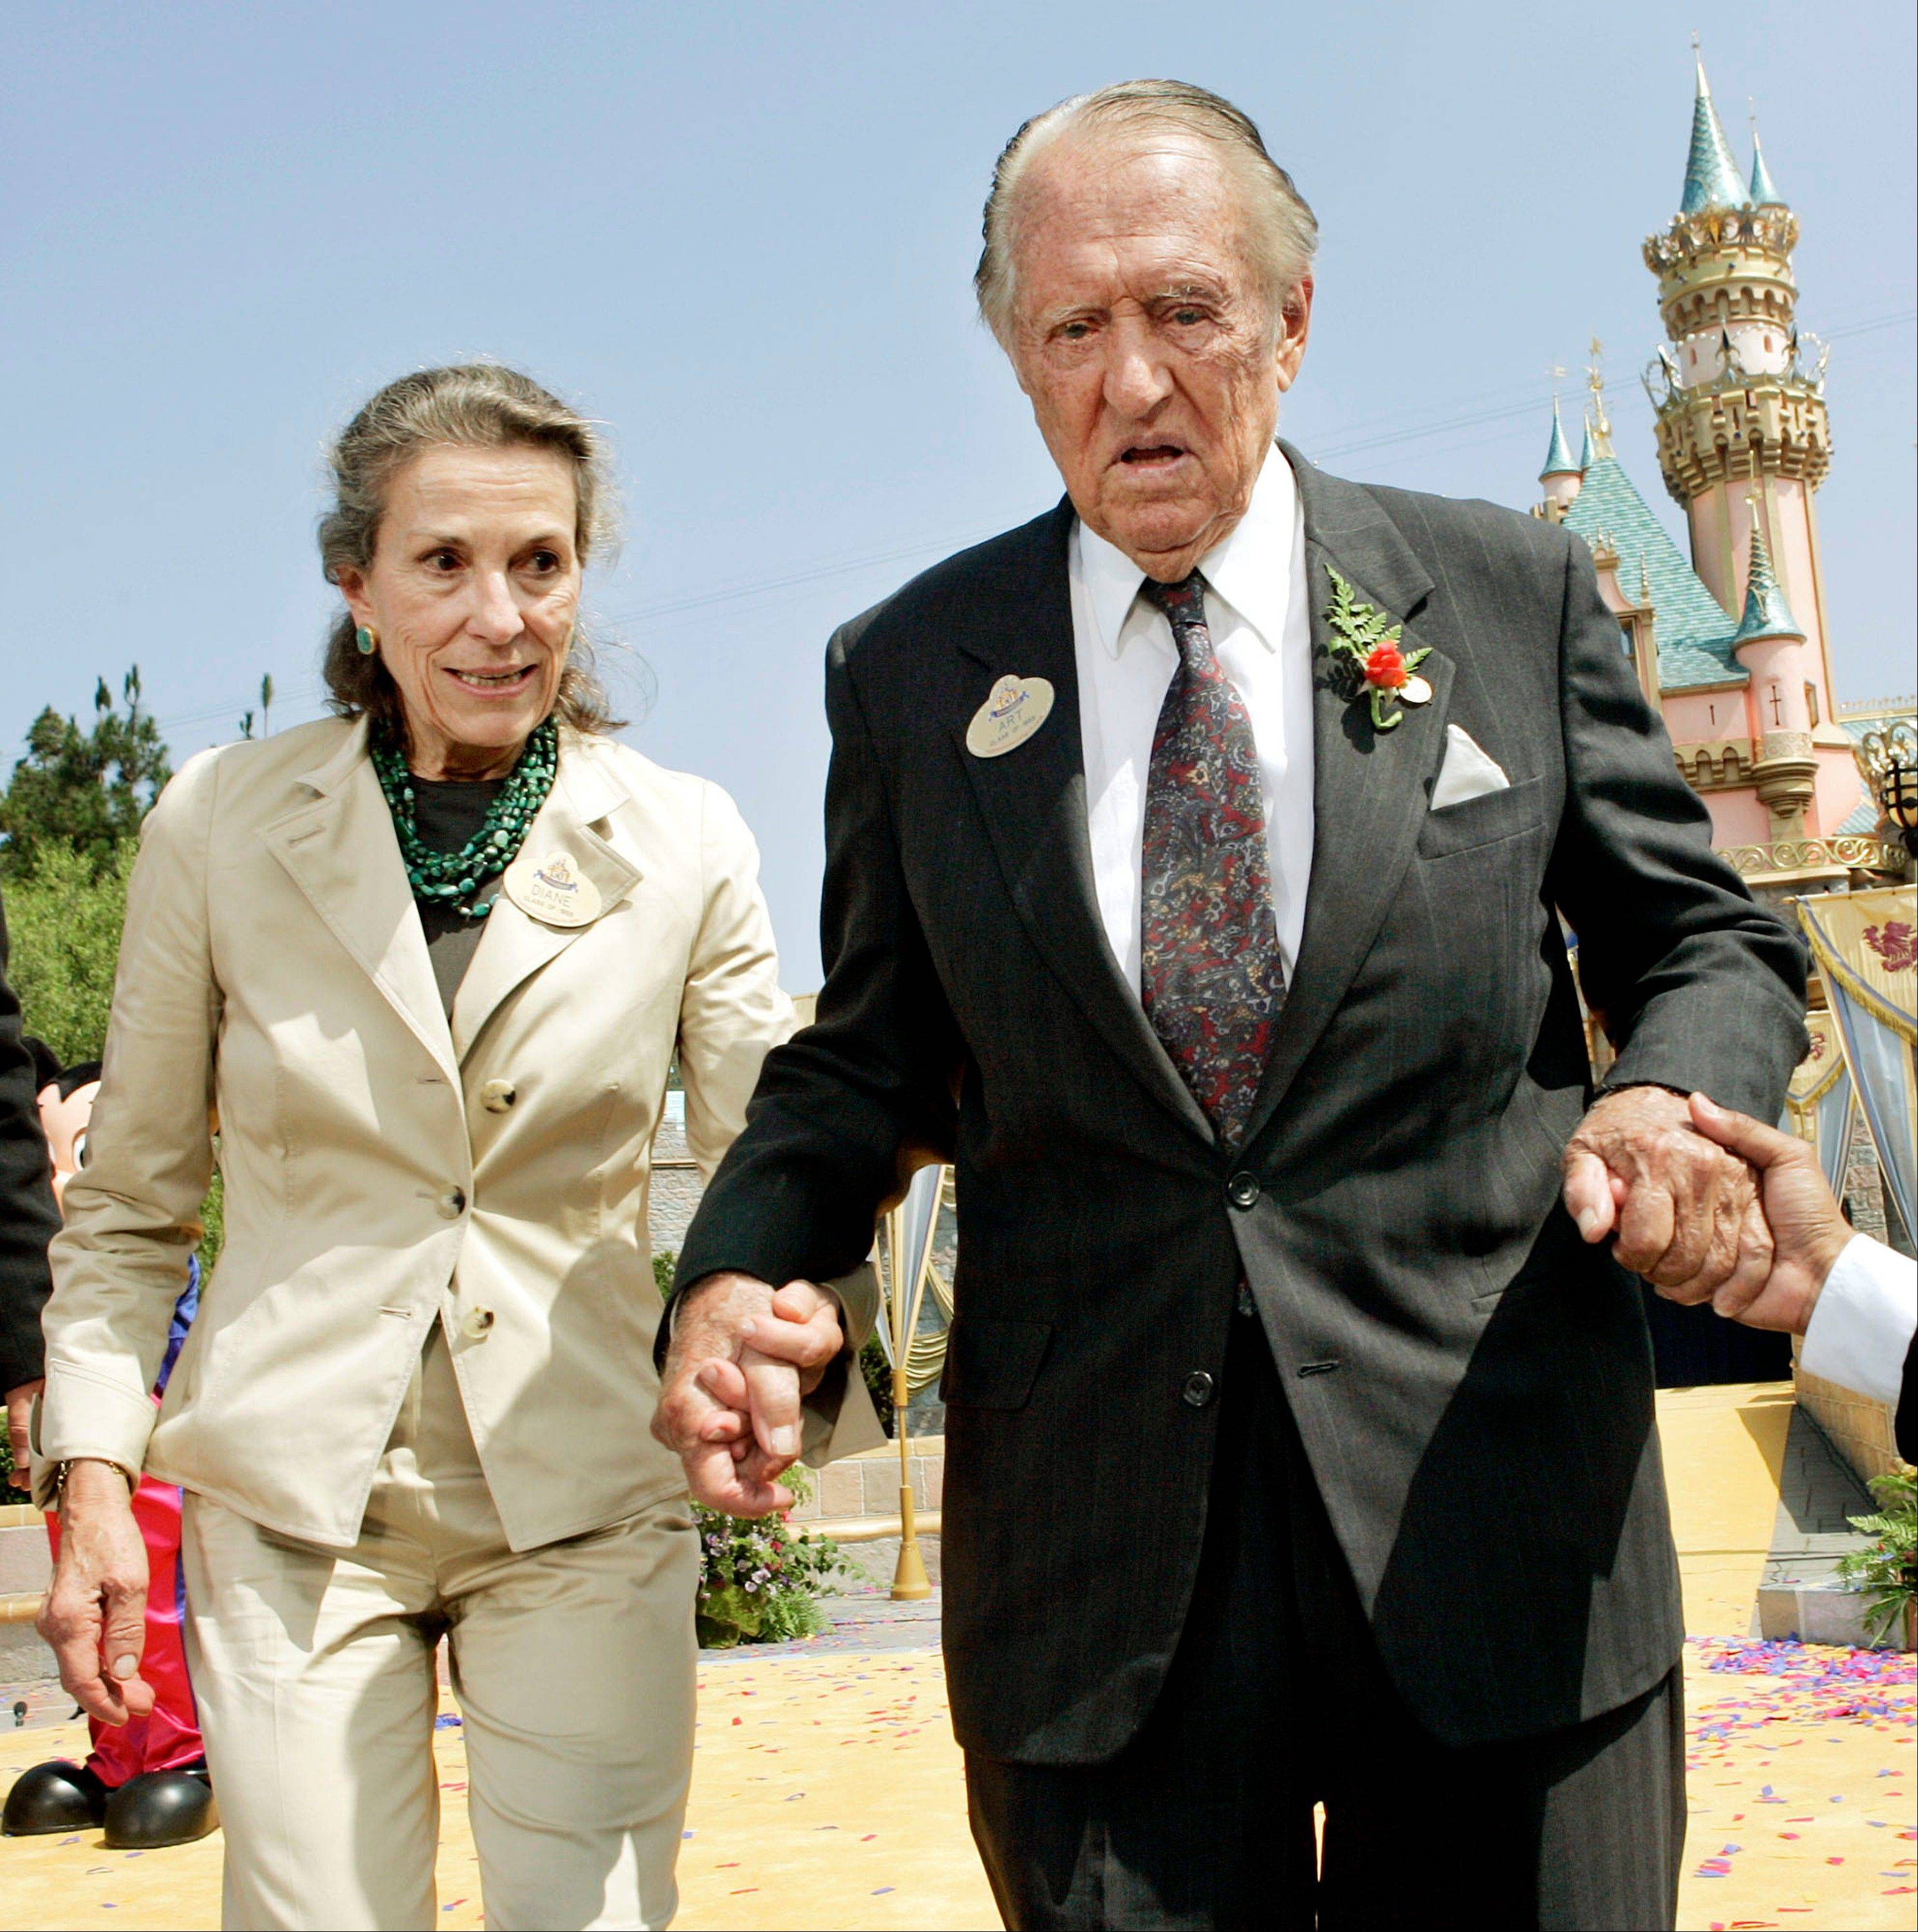 In this July 17, 2005 file photo, Diane Disney Miller, left, assists Art Linkletter, who fifty years earlier hosted the live opening day telecast of Disneyland, as they depart the podium following a re-dedication ceremony in Anaheim, Calif. Disney Miller, the daughter of Walt Disney and one of his inspirations for building the Disneyland theme park, has died at her home in Napa, California. She was 79.